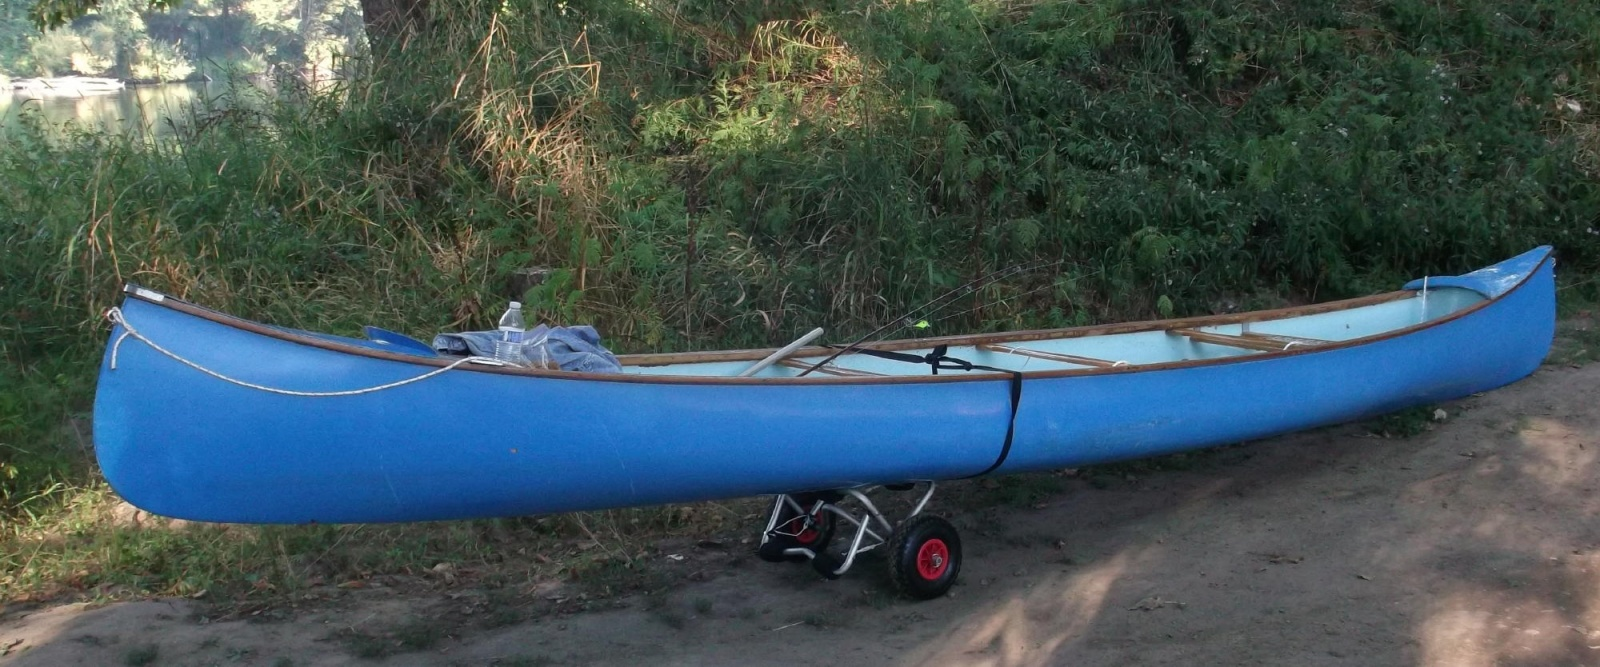 Click image for larger version  Name:canoe on wheels.jpg Views:45 Size:399.6 KB ID:67791